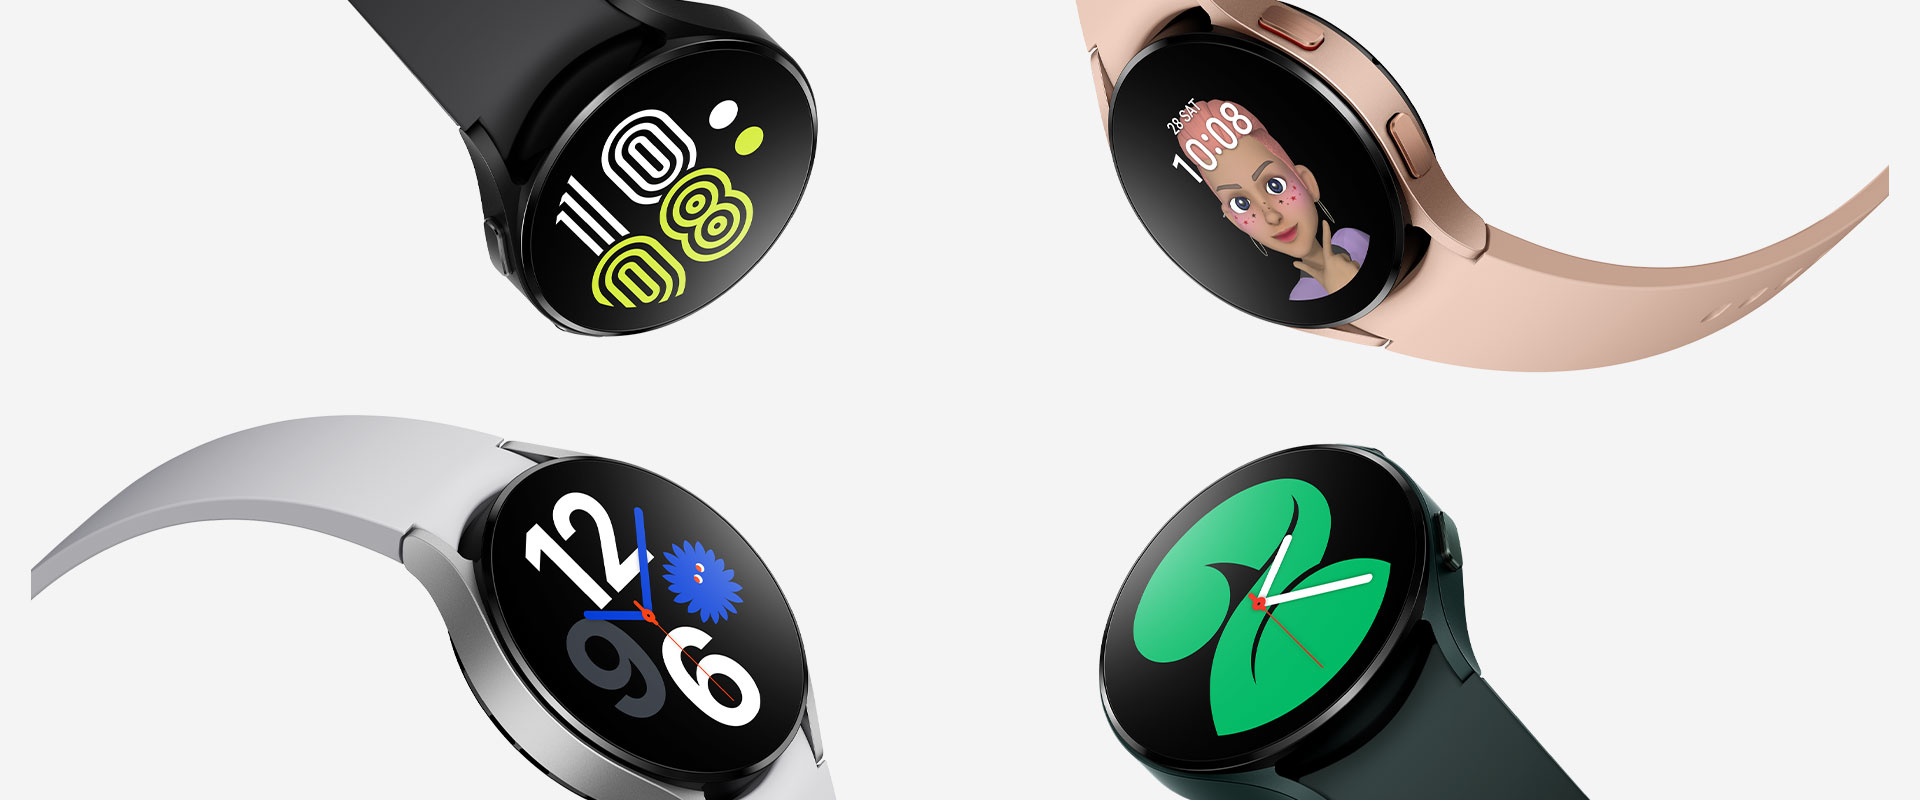 Four Galaxy Watch4 devices are grouped together, with each watch prominently showing different watch face styles to tell the time. Each watch is in a different color, from black, pink gold, green, to silver.